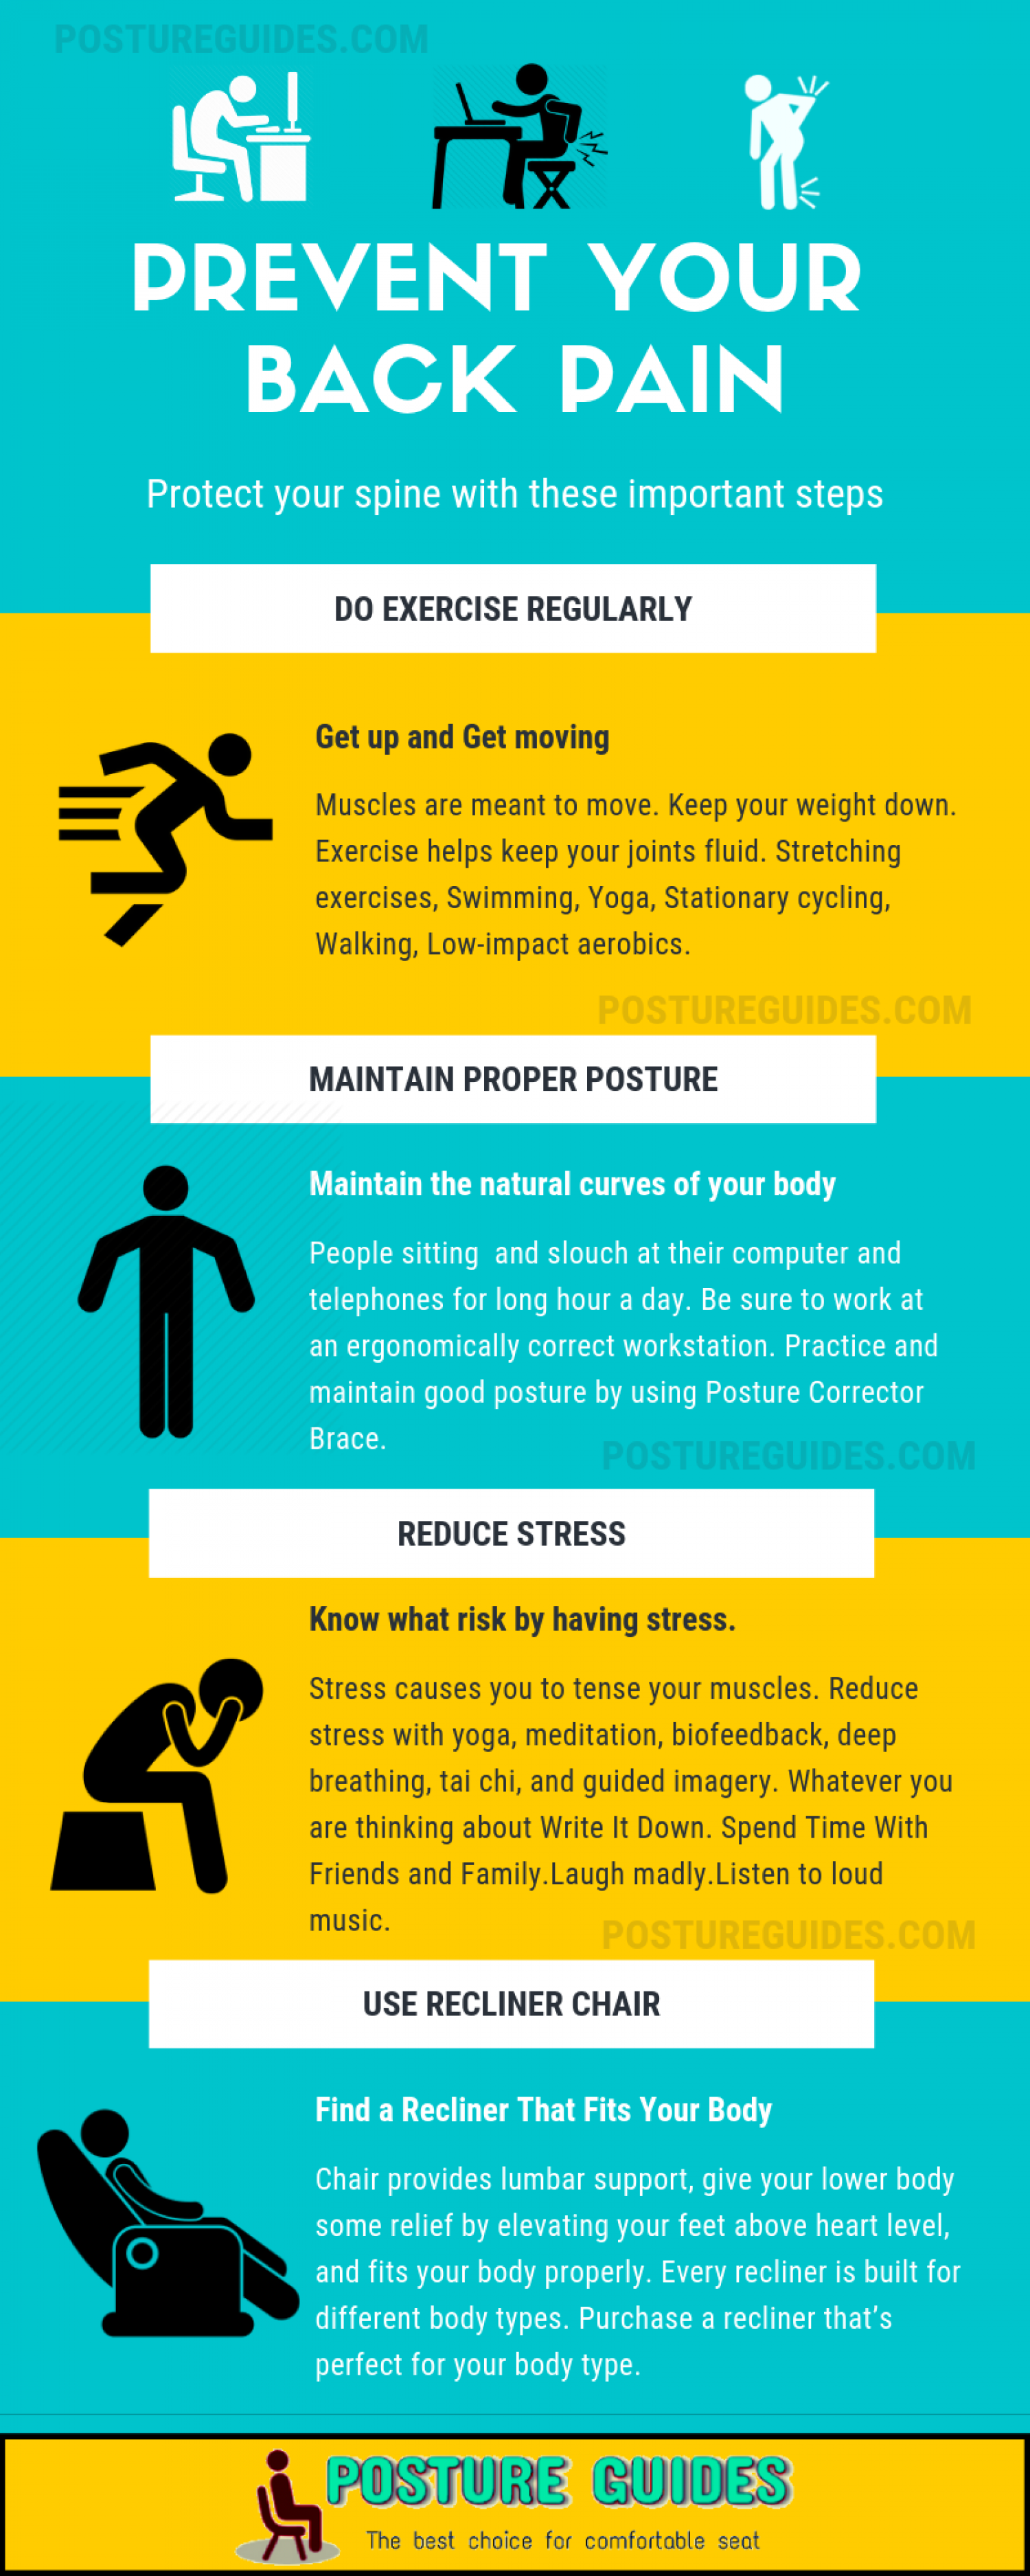 Prevent you back pain with these simple tips Infographic